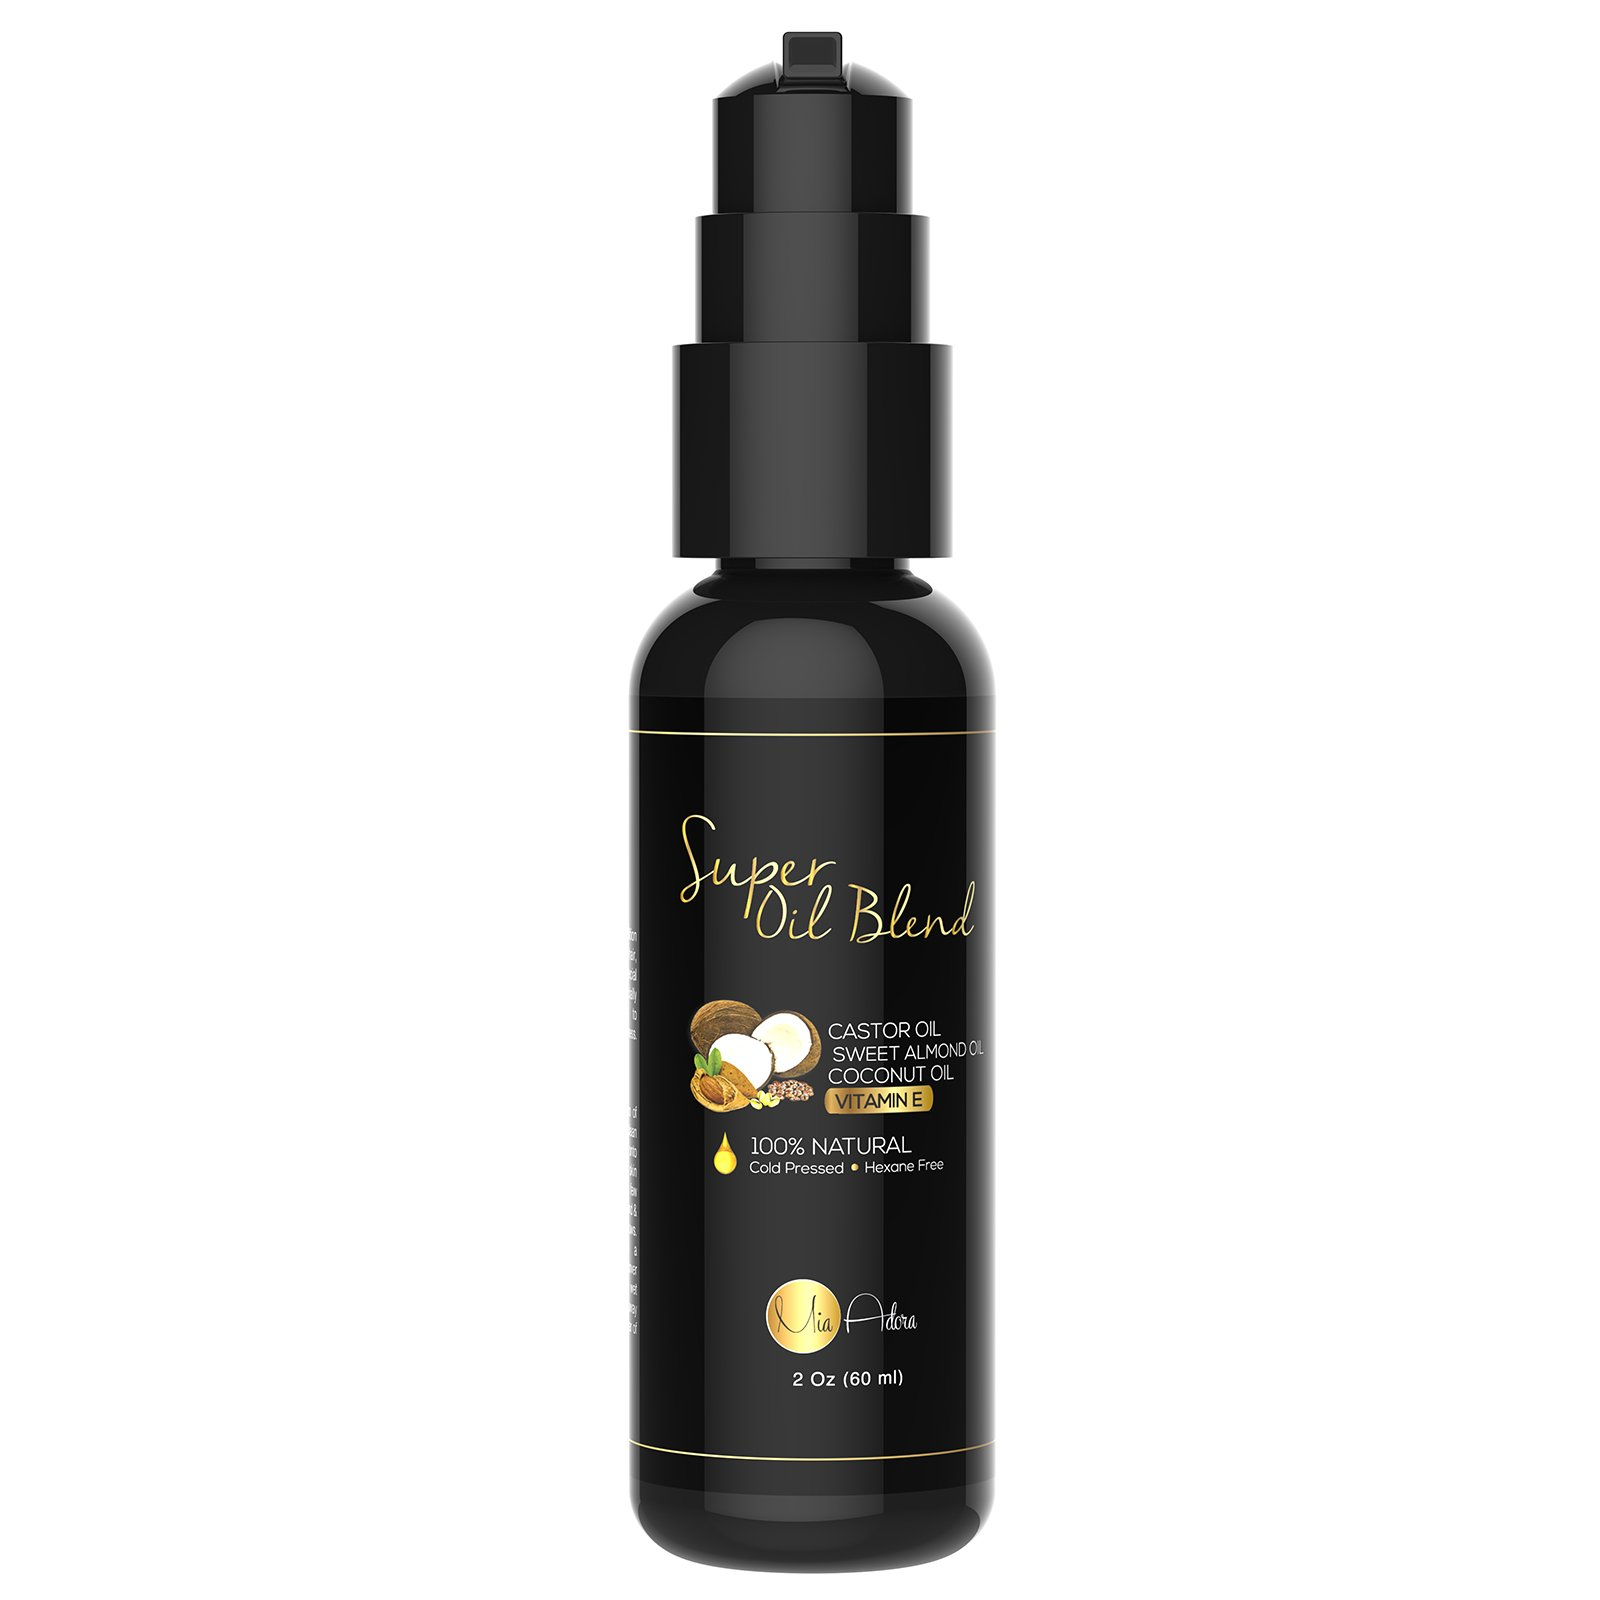 PURE Castor Oil with Sweet Almond Oil, Coconut Oil and Vitamin E Oil - Best Hair Growth, Regrowth, Conditioning Oil Blend for Eyelashes & Eyebrows. 100% Natural - NO Parabens, Fillers or Toxins